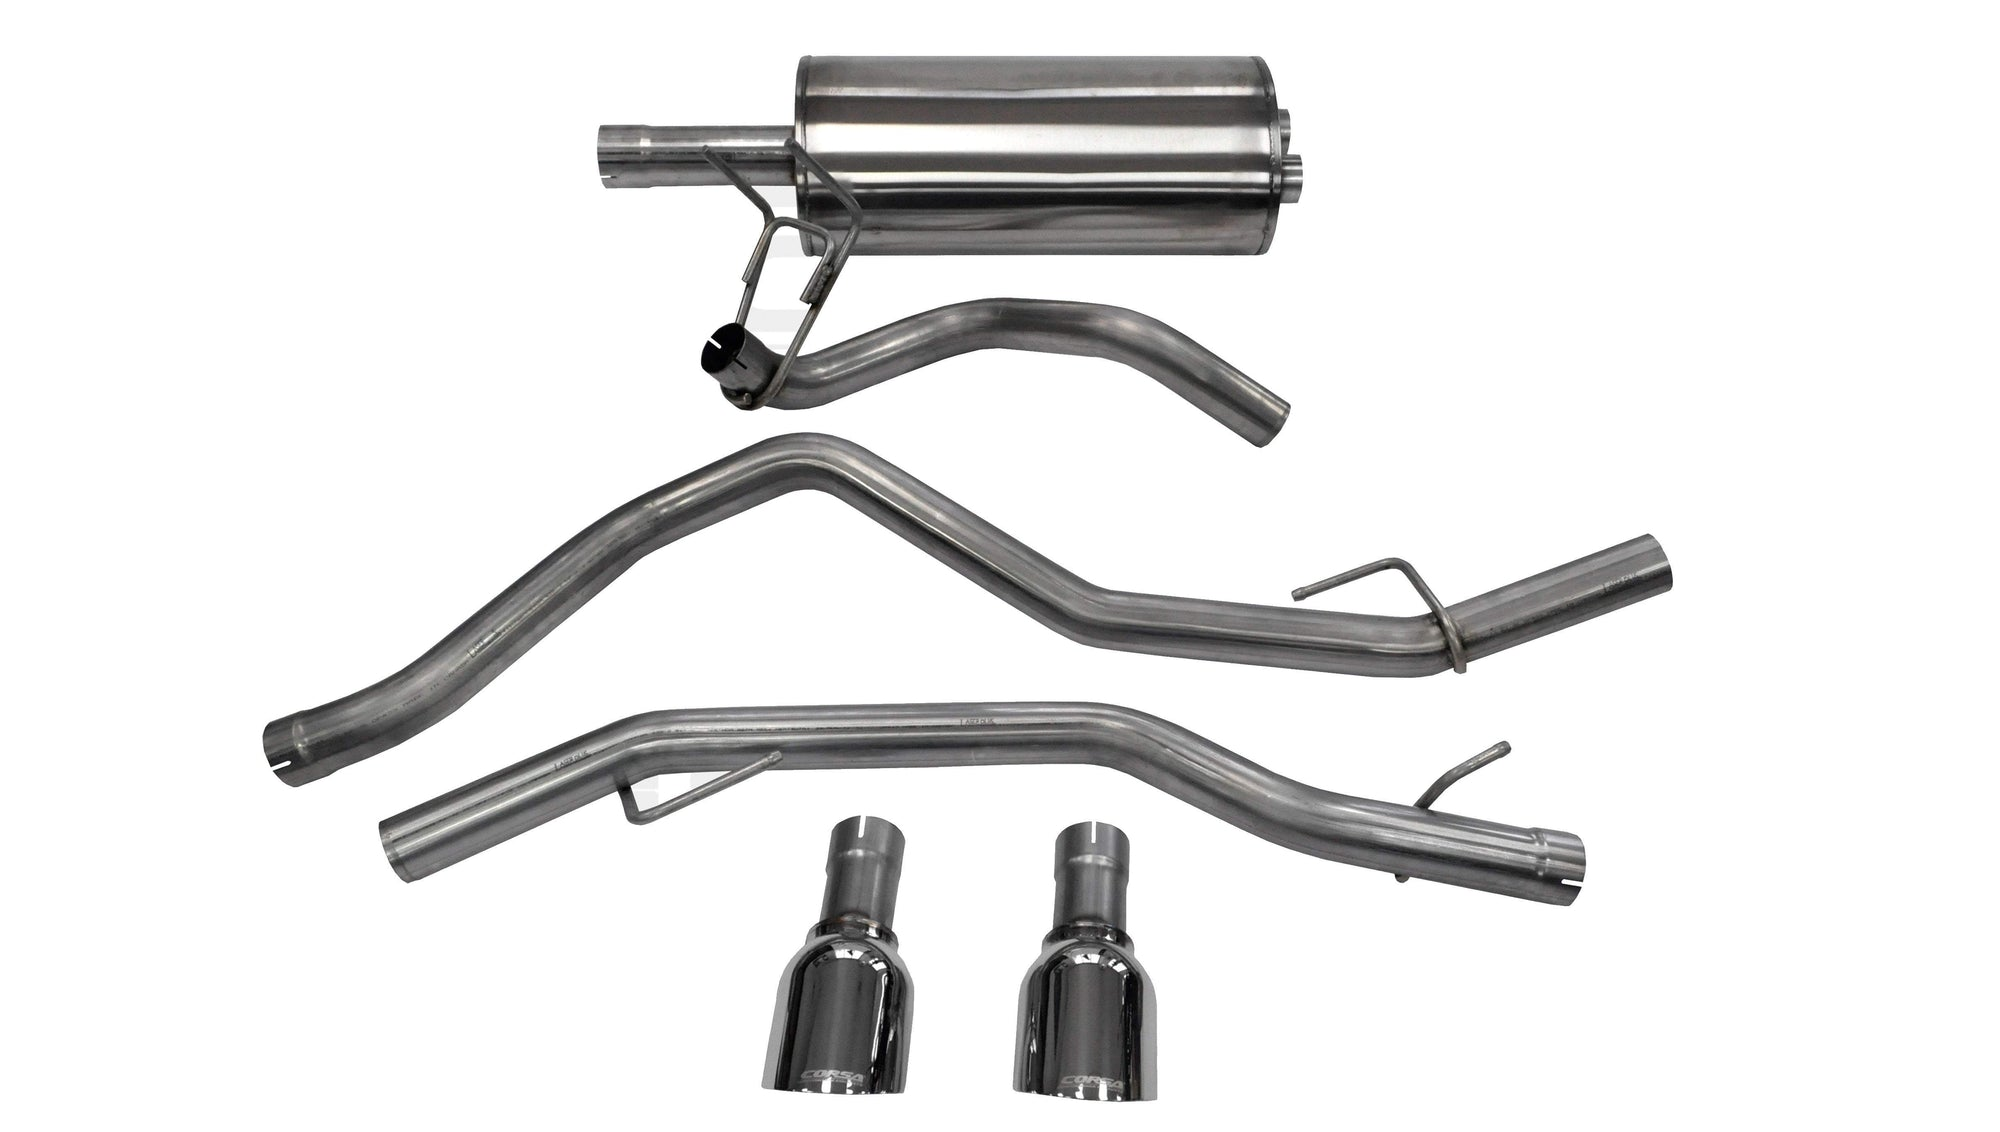 "CORSA PERFORMANCE Cat-Back Exhaust Polished / Sport / Dual Rear Exit Single -4.5in 2009-2019c Dodge Ram 1500 V8, 3.0"" Dual Rear Exit Catback Exhaust System with Single 4.5"" Tips (14405) Sport Sound Level"